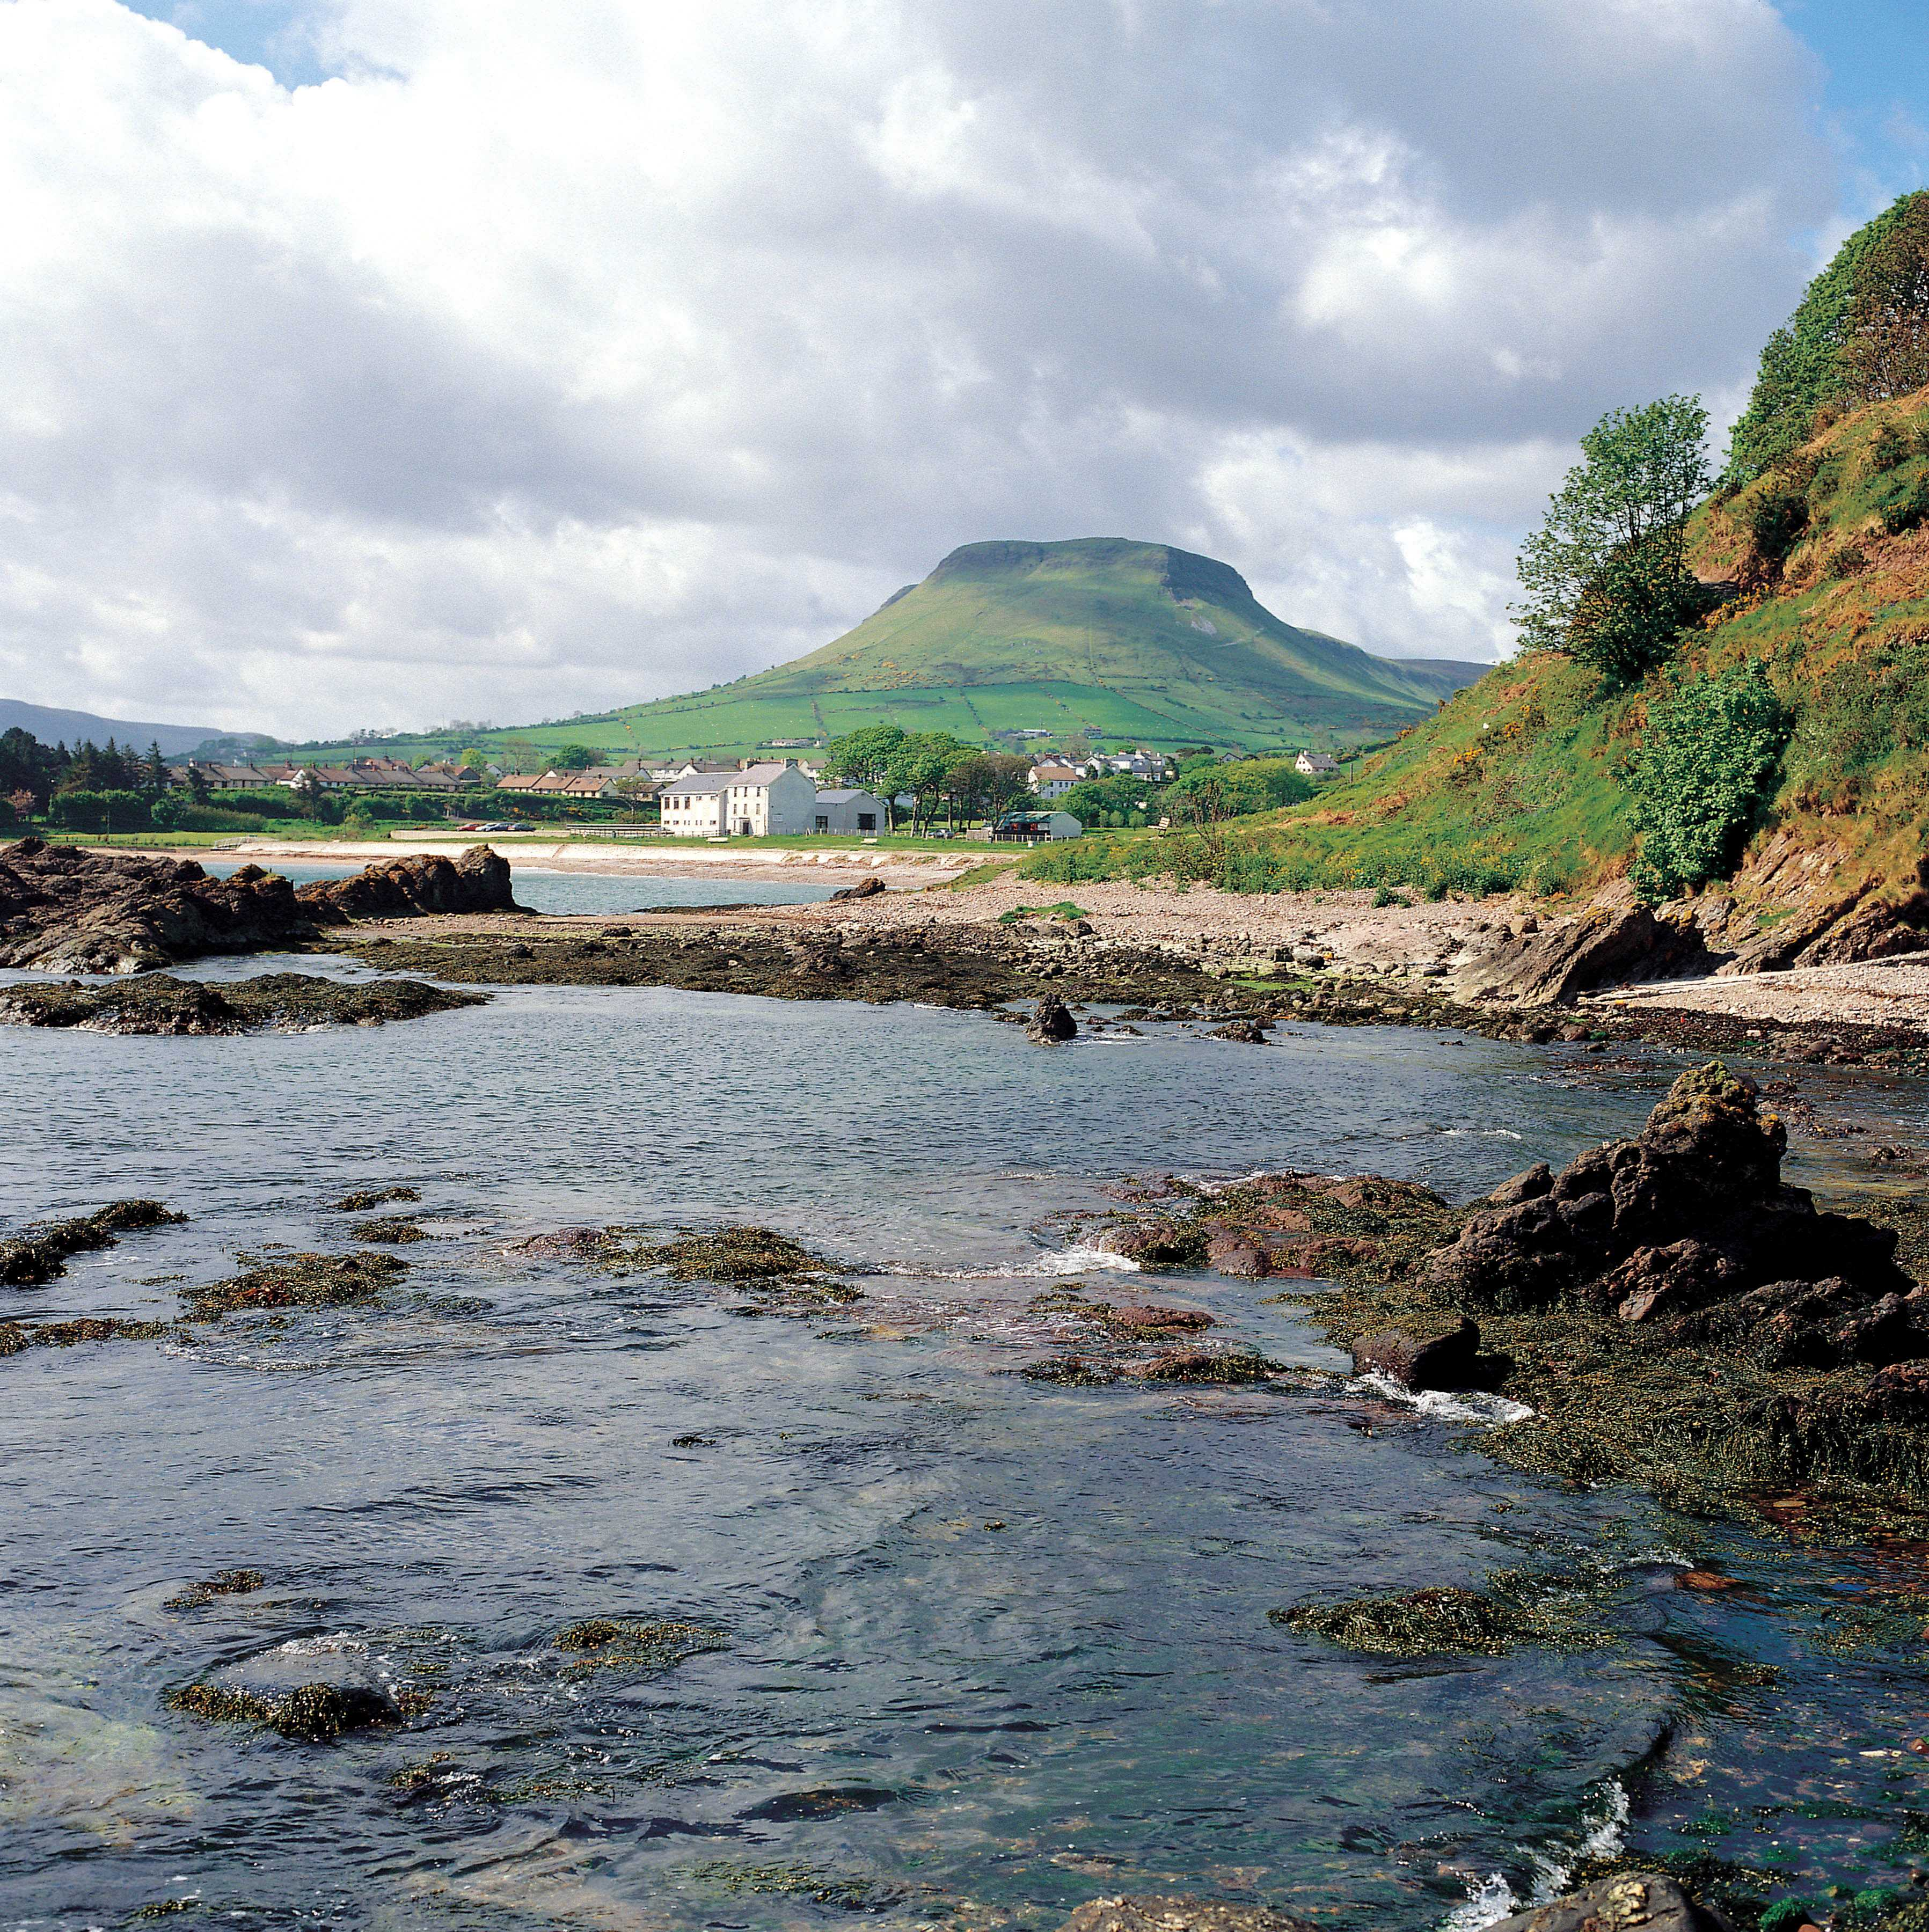 Cushendall, Beach and Lurig Mountian